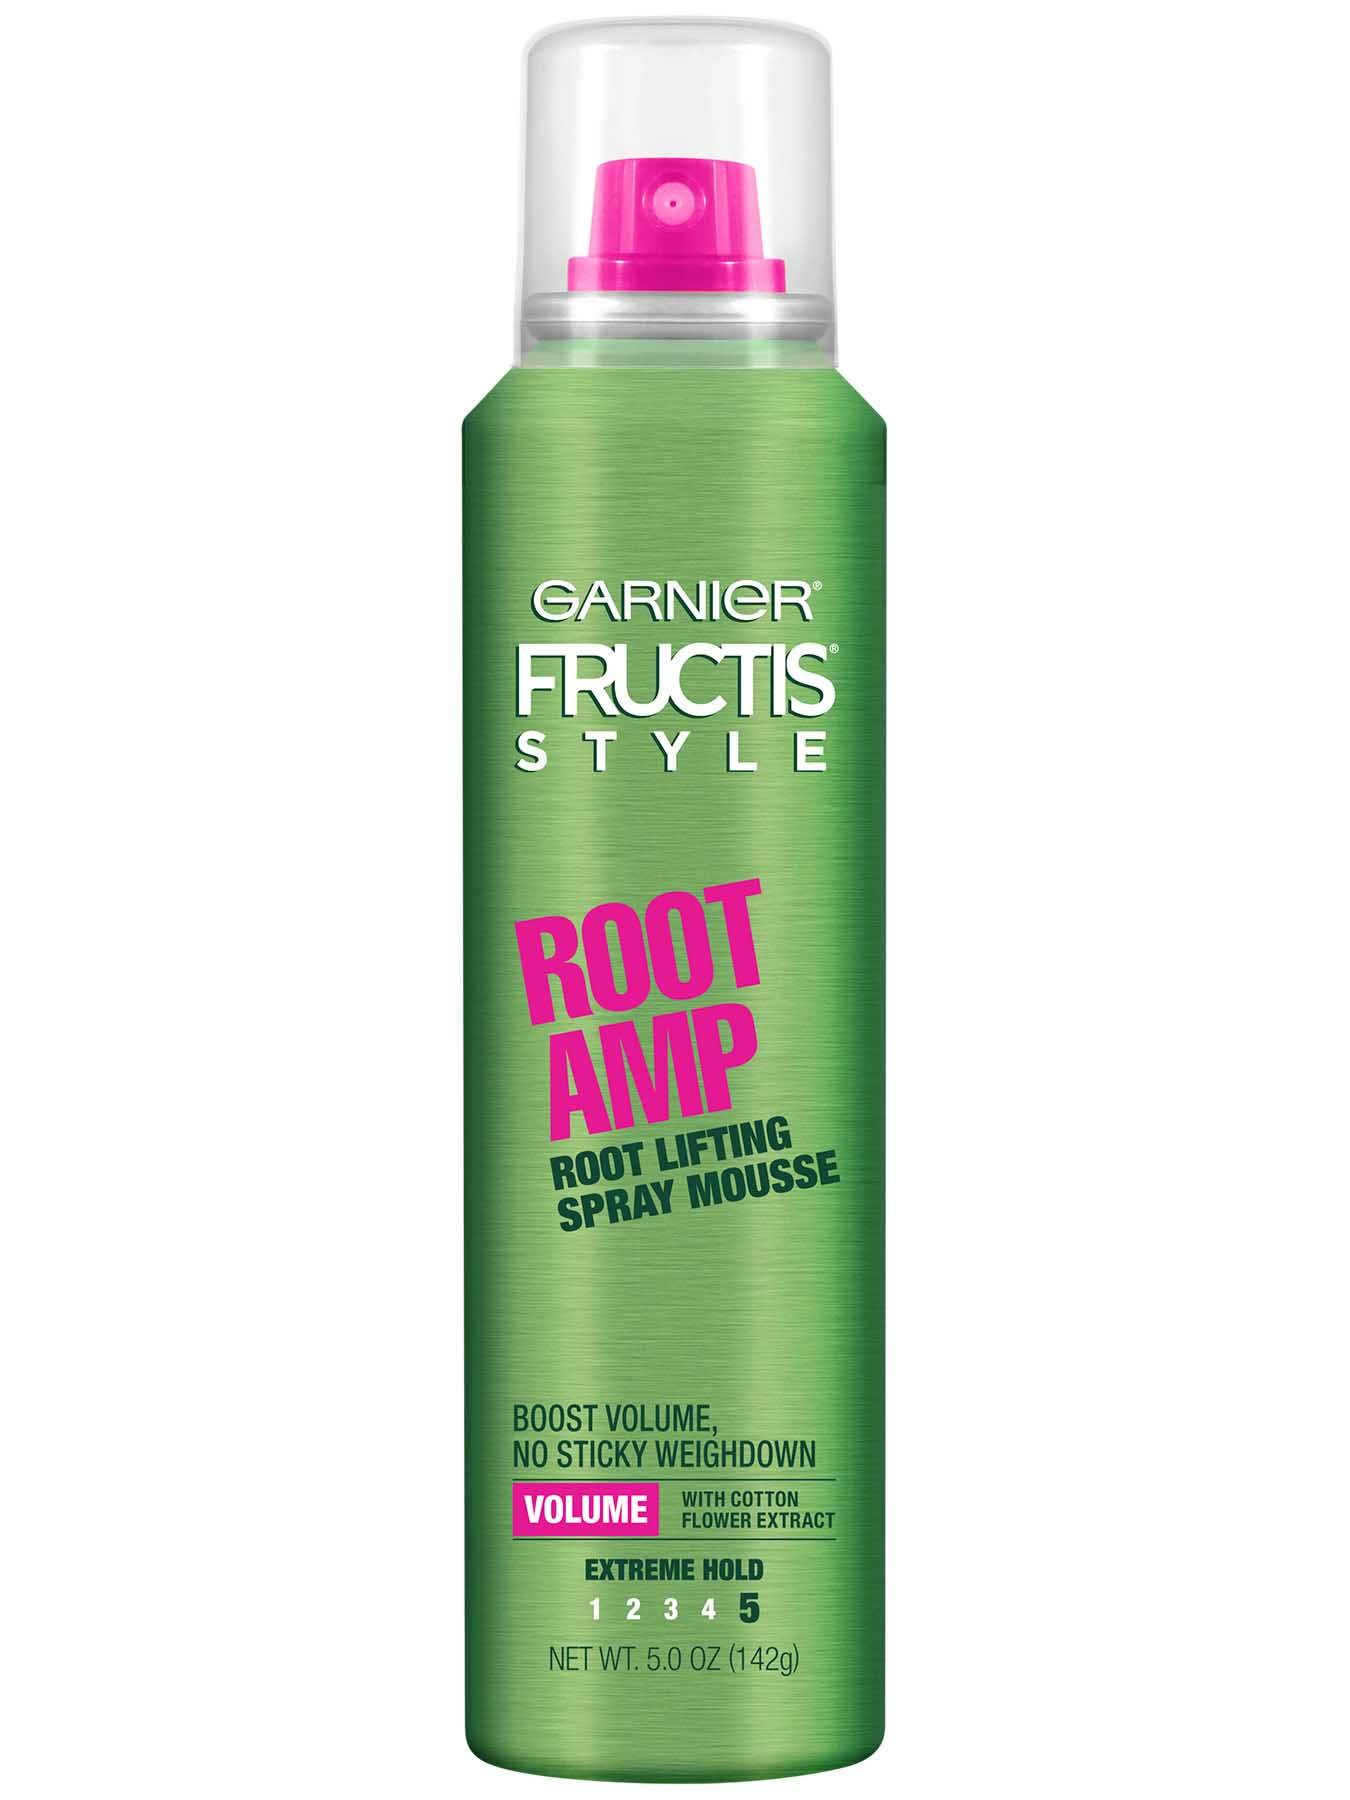 Front view of Root Amp Root Lifting Spray Mousse.